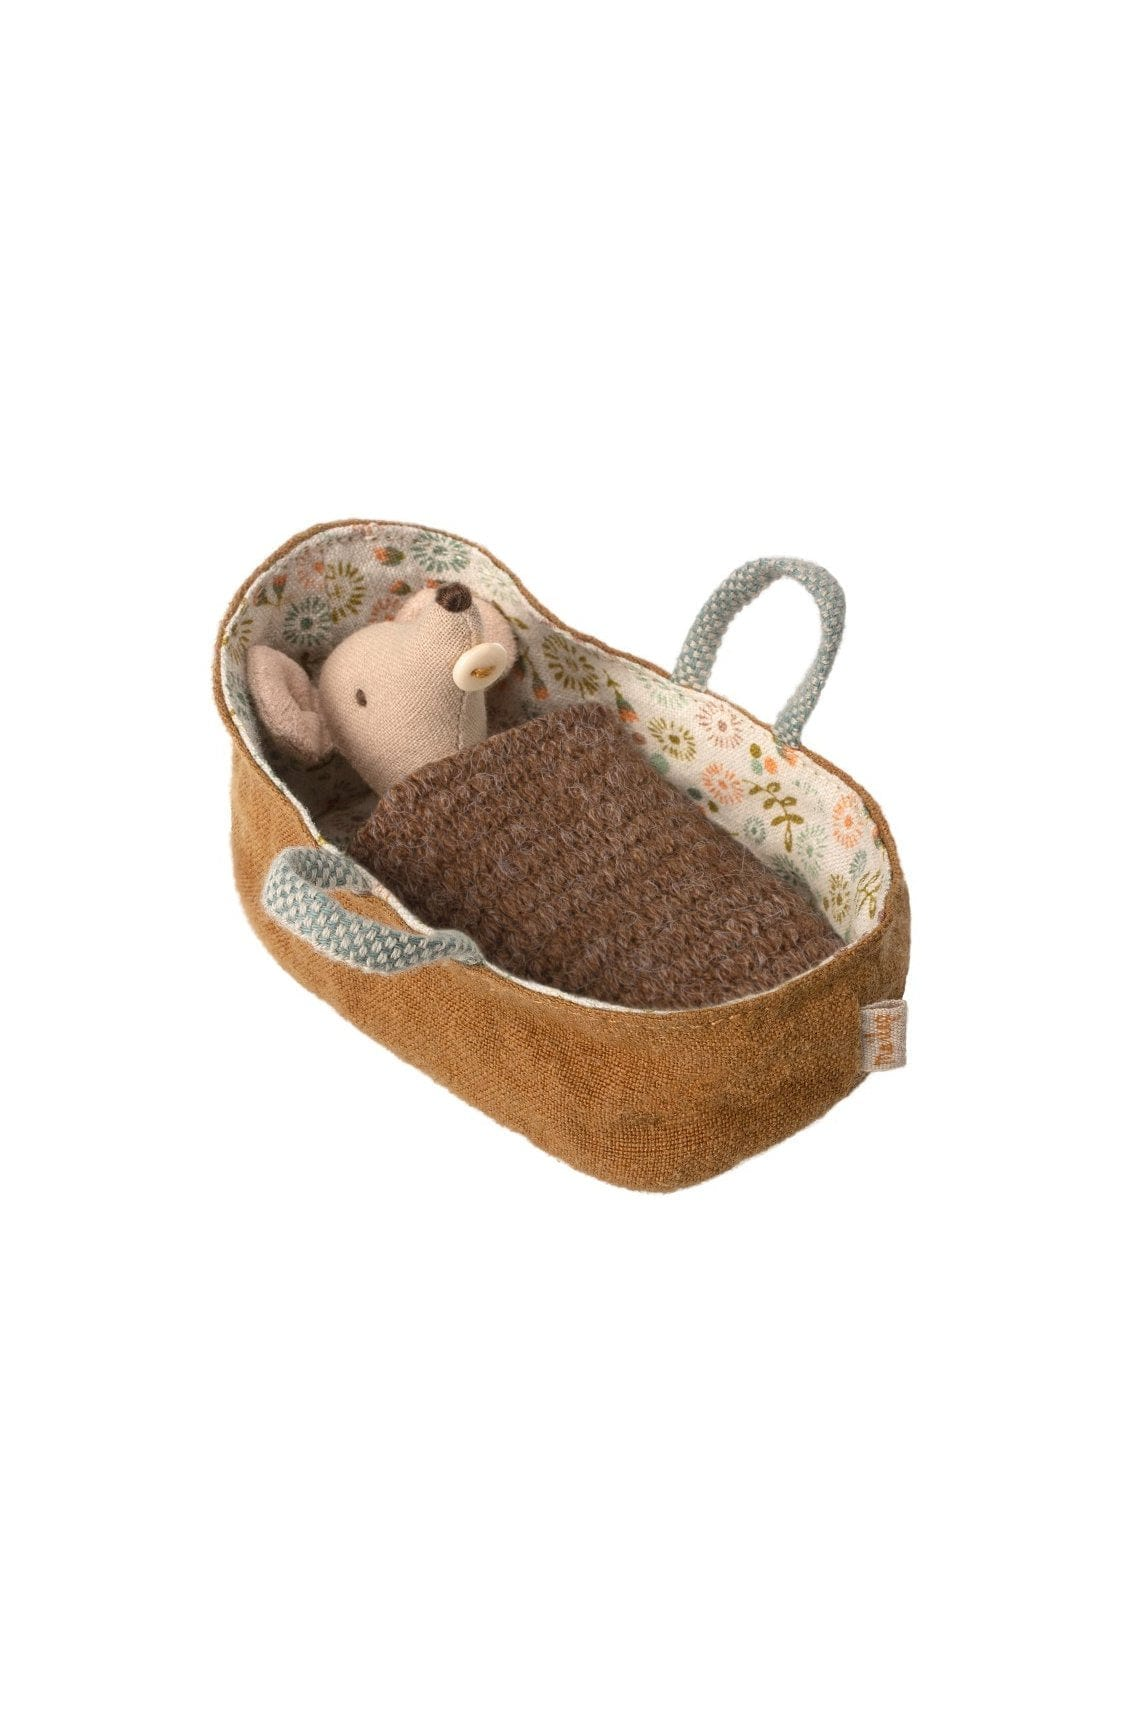 Maileg Mouse Baby in carrycot - Hello Little Birdie